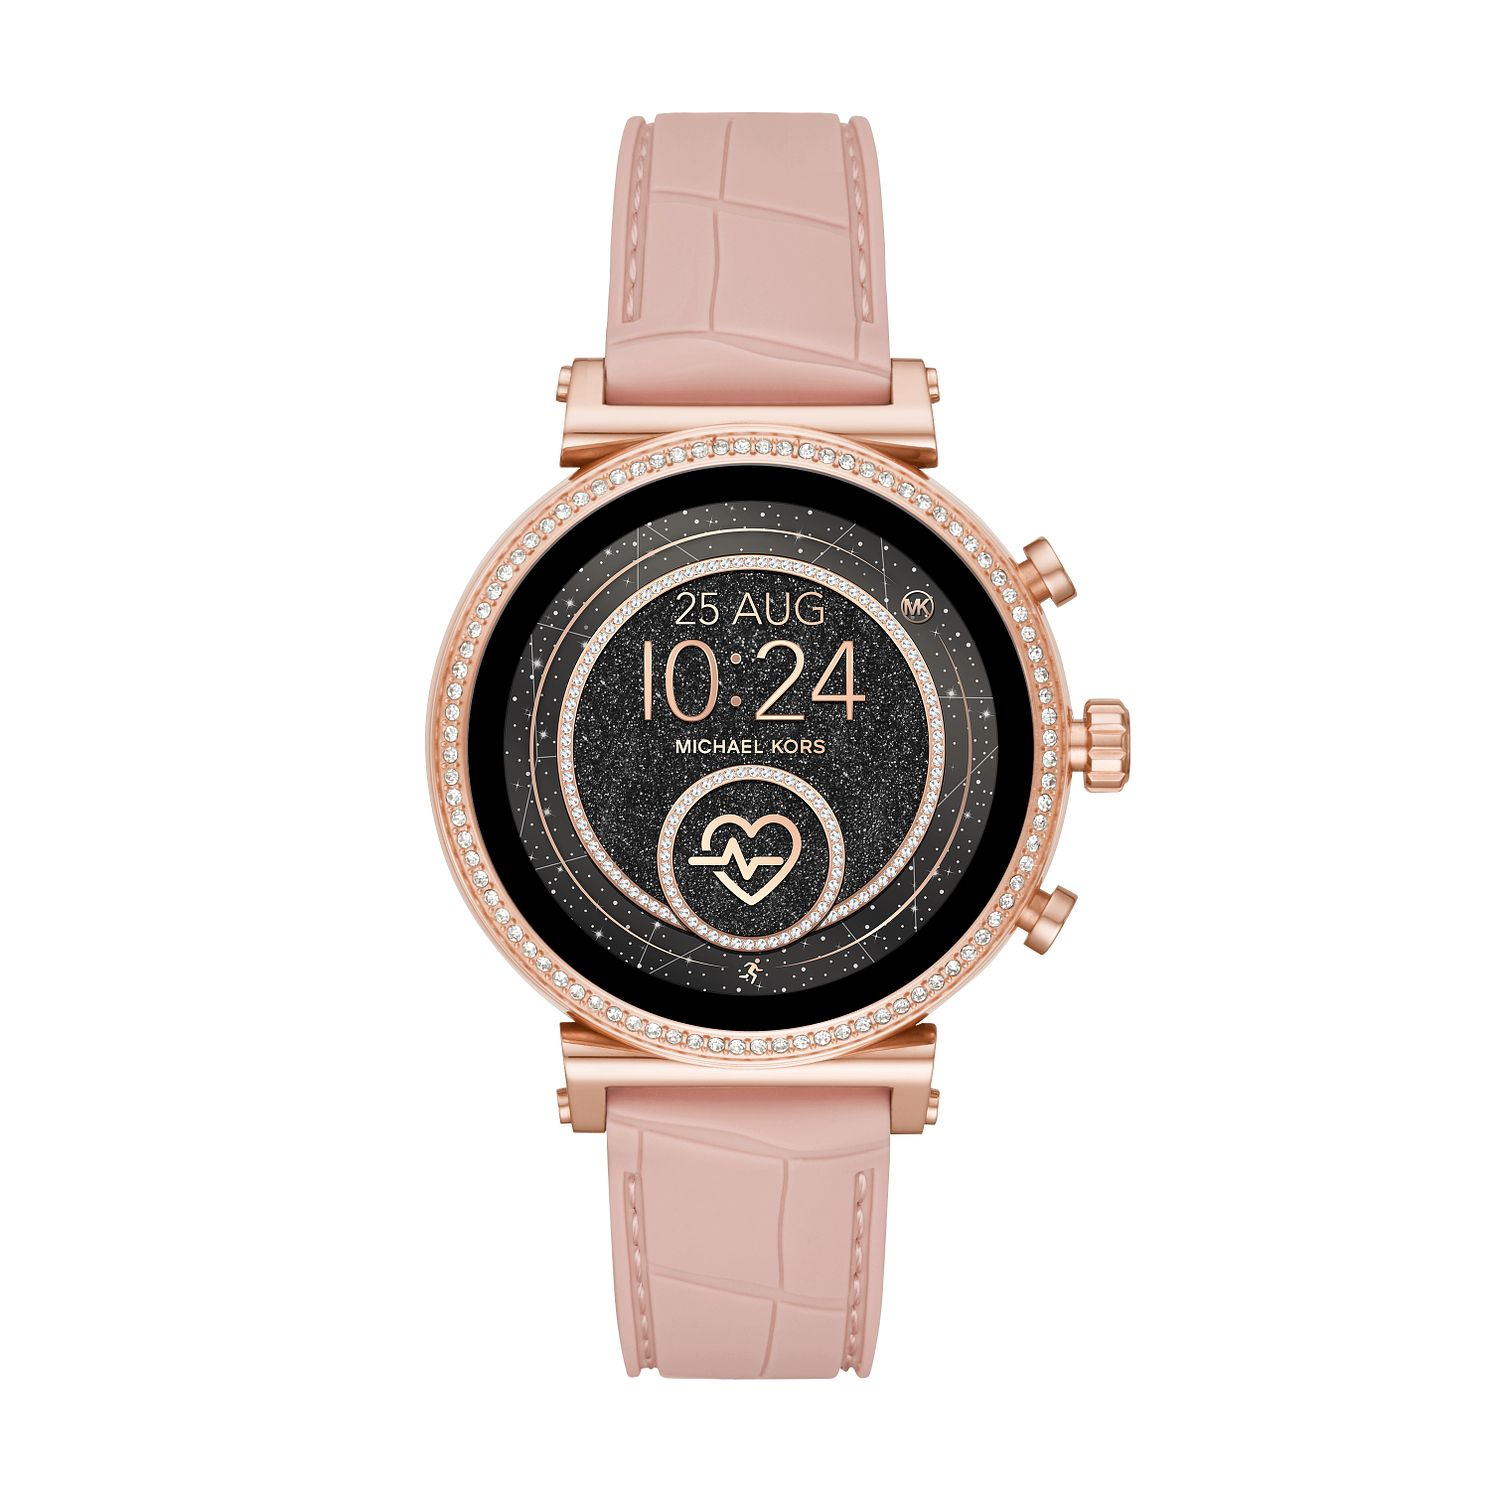 Michael Kors Sofie HR Gen 4 Pink Silicone Strap SmartWatch - Product number 4752899